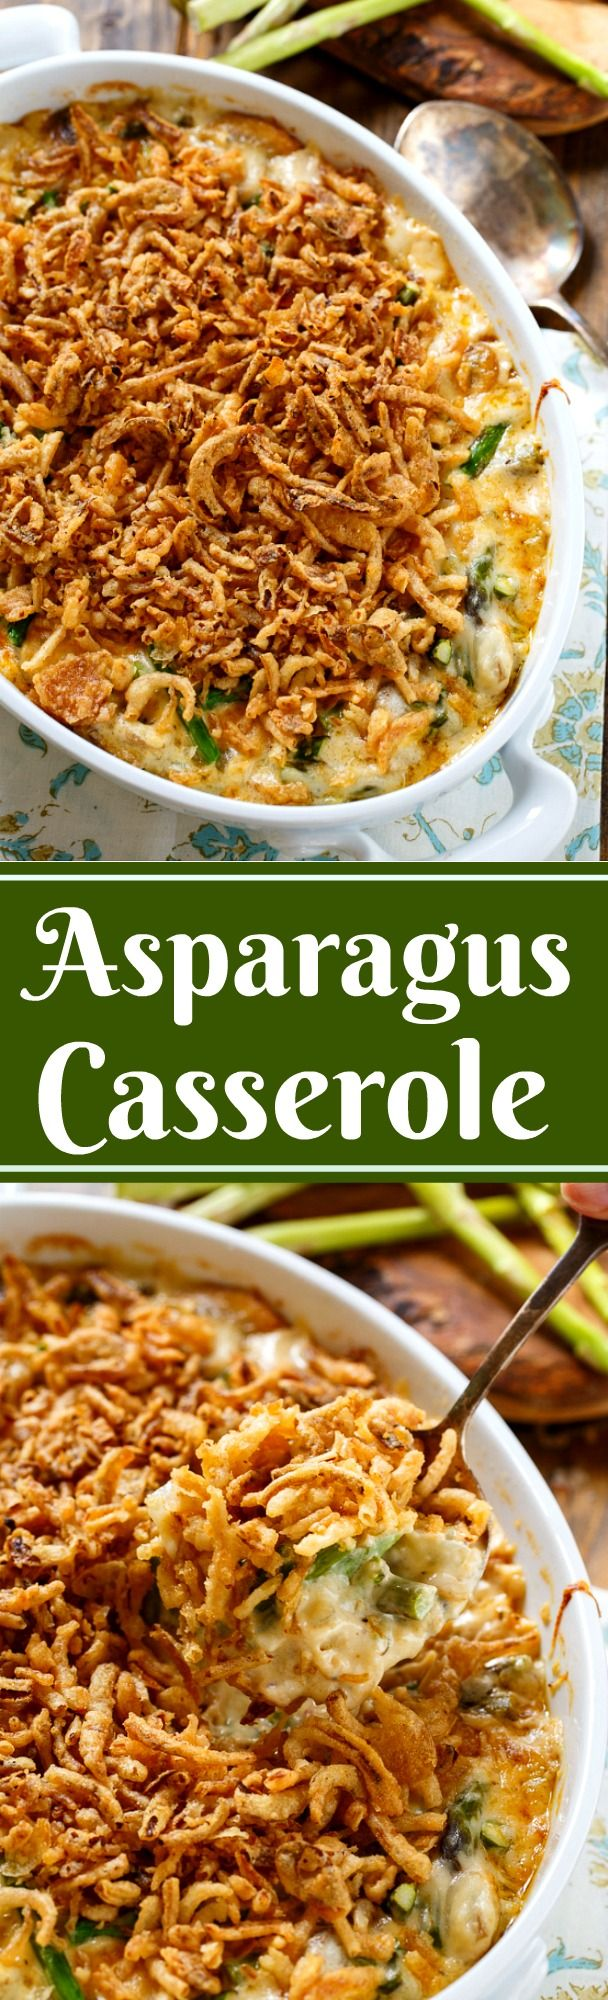 Asparagus Casserole made with fresh asparagus and French fried onions.